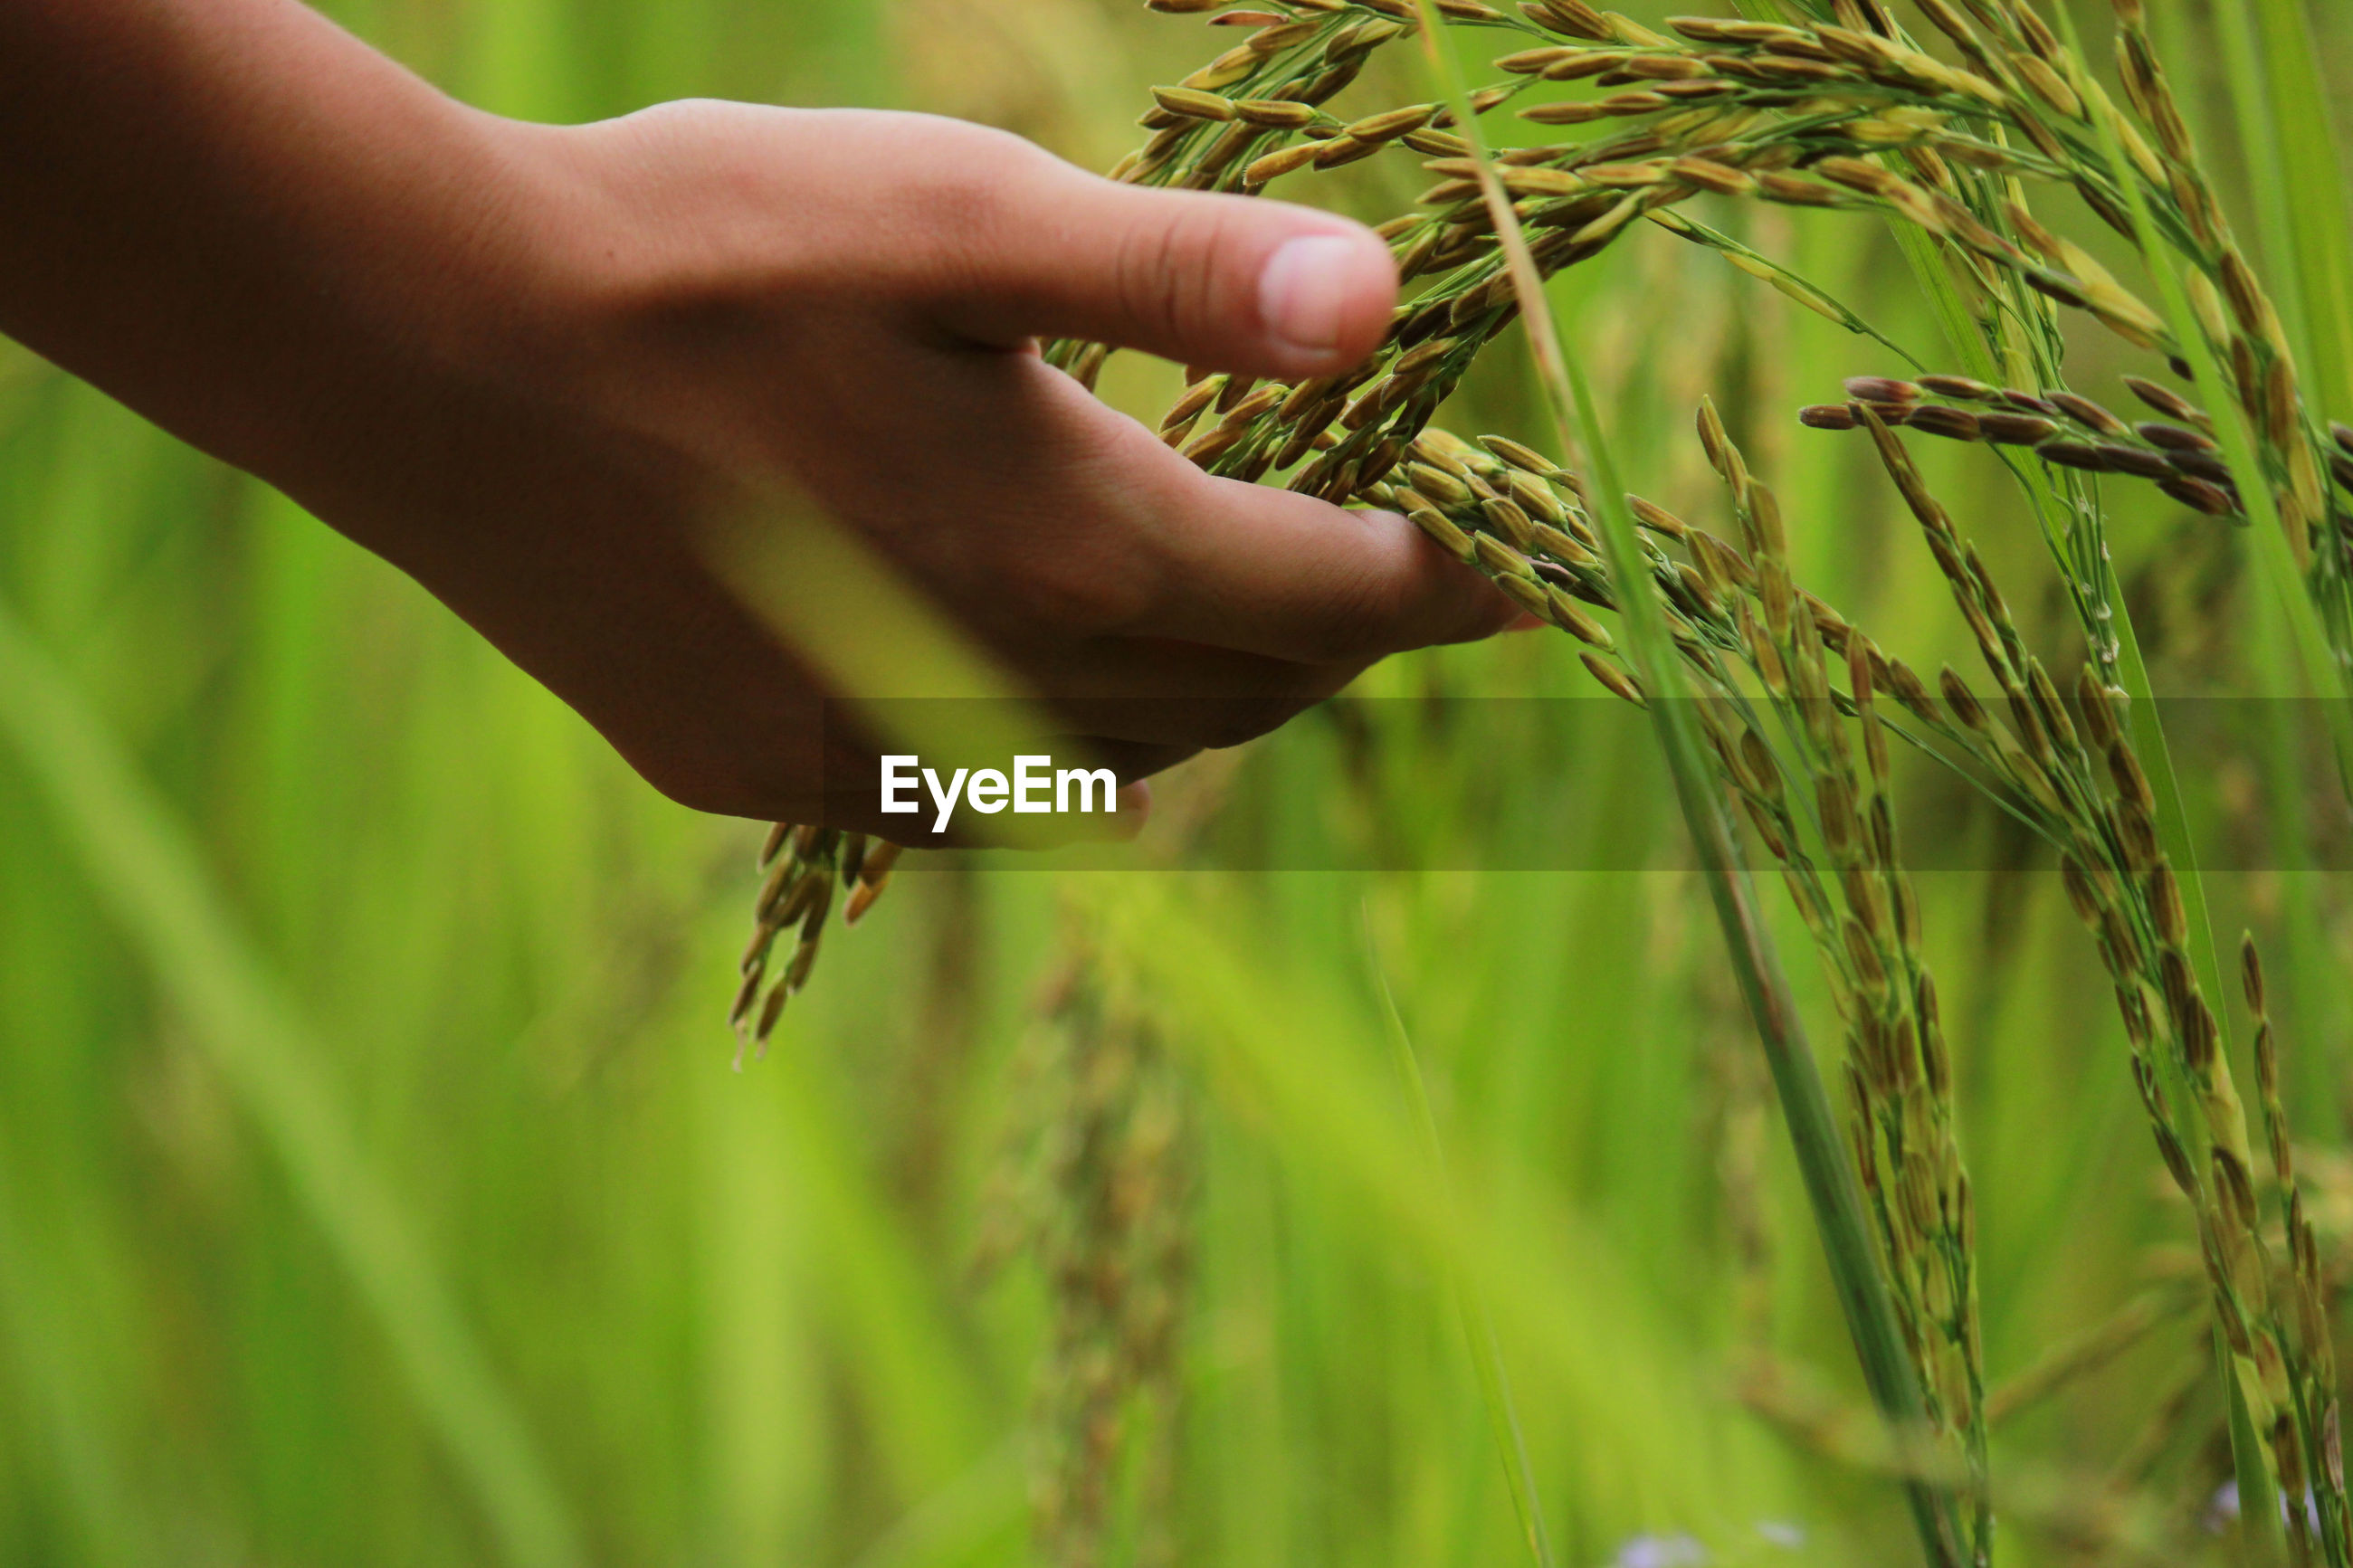 Close-up of hand touching wheat plant at farm